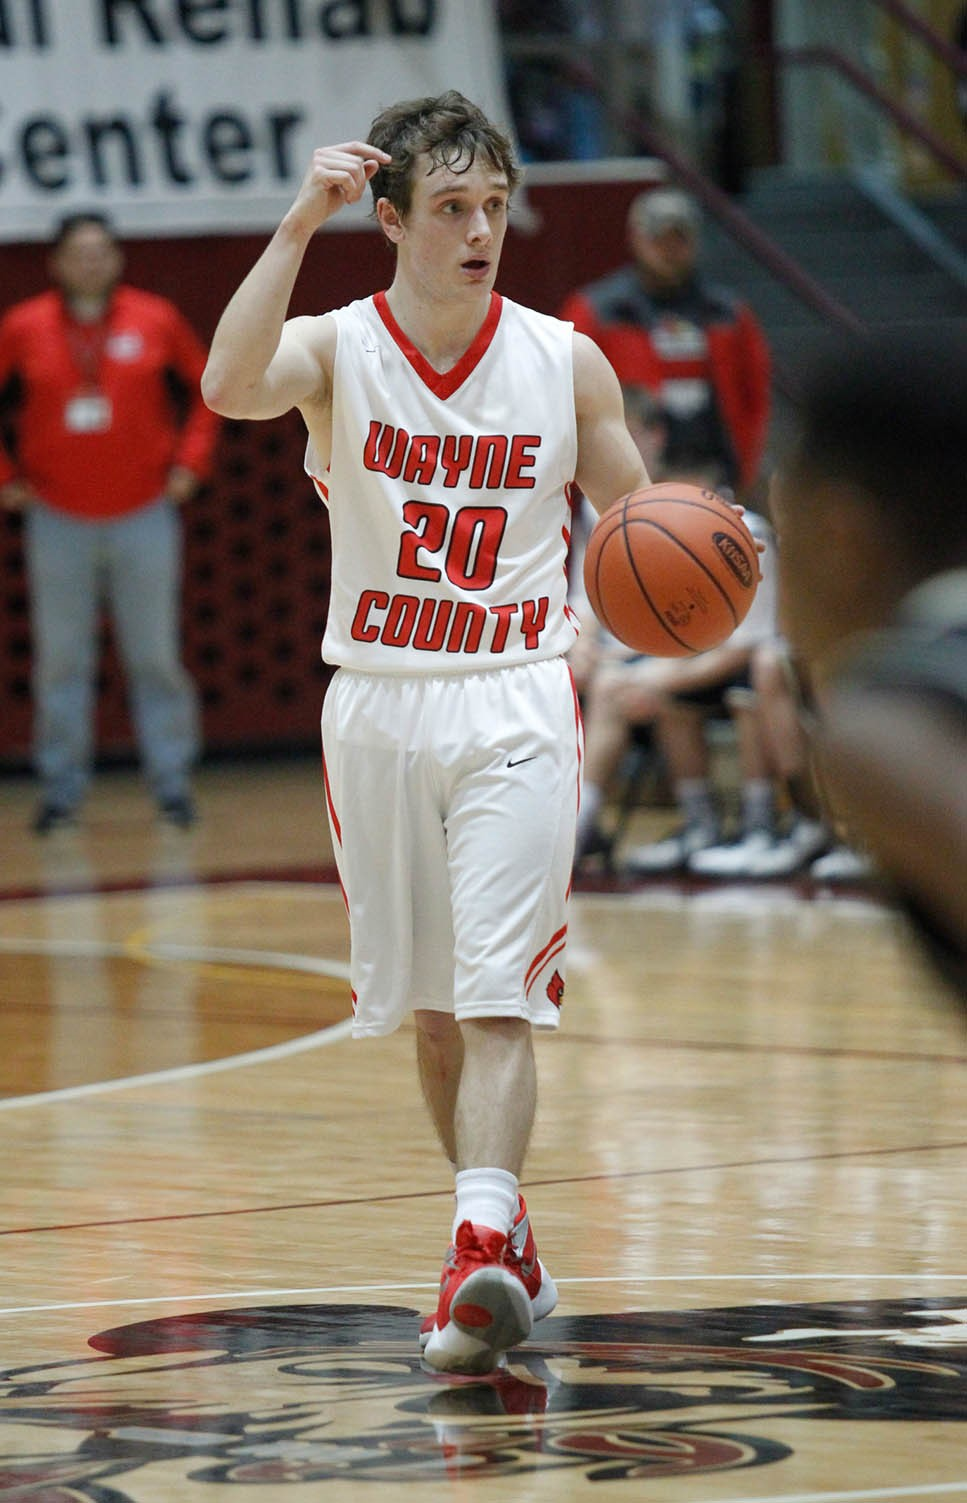 Wayne County Participates in 12th Region Basketball Action During 2015-16 Season